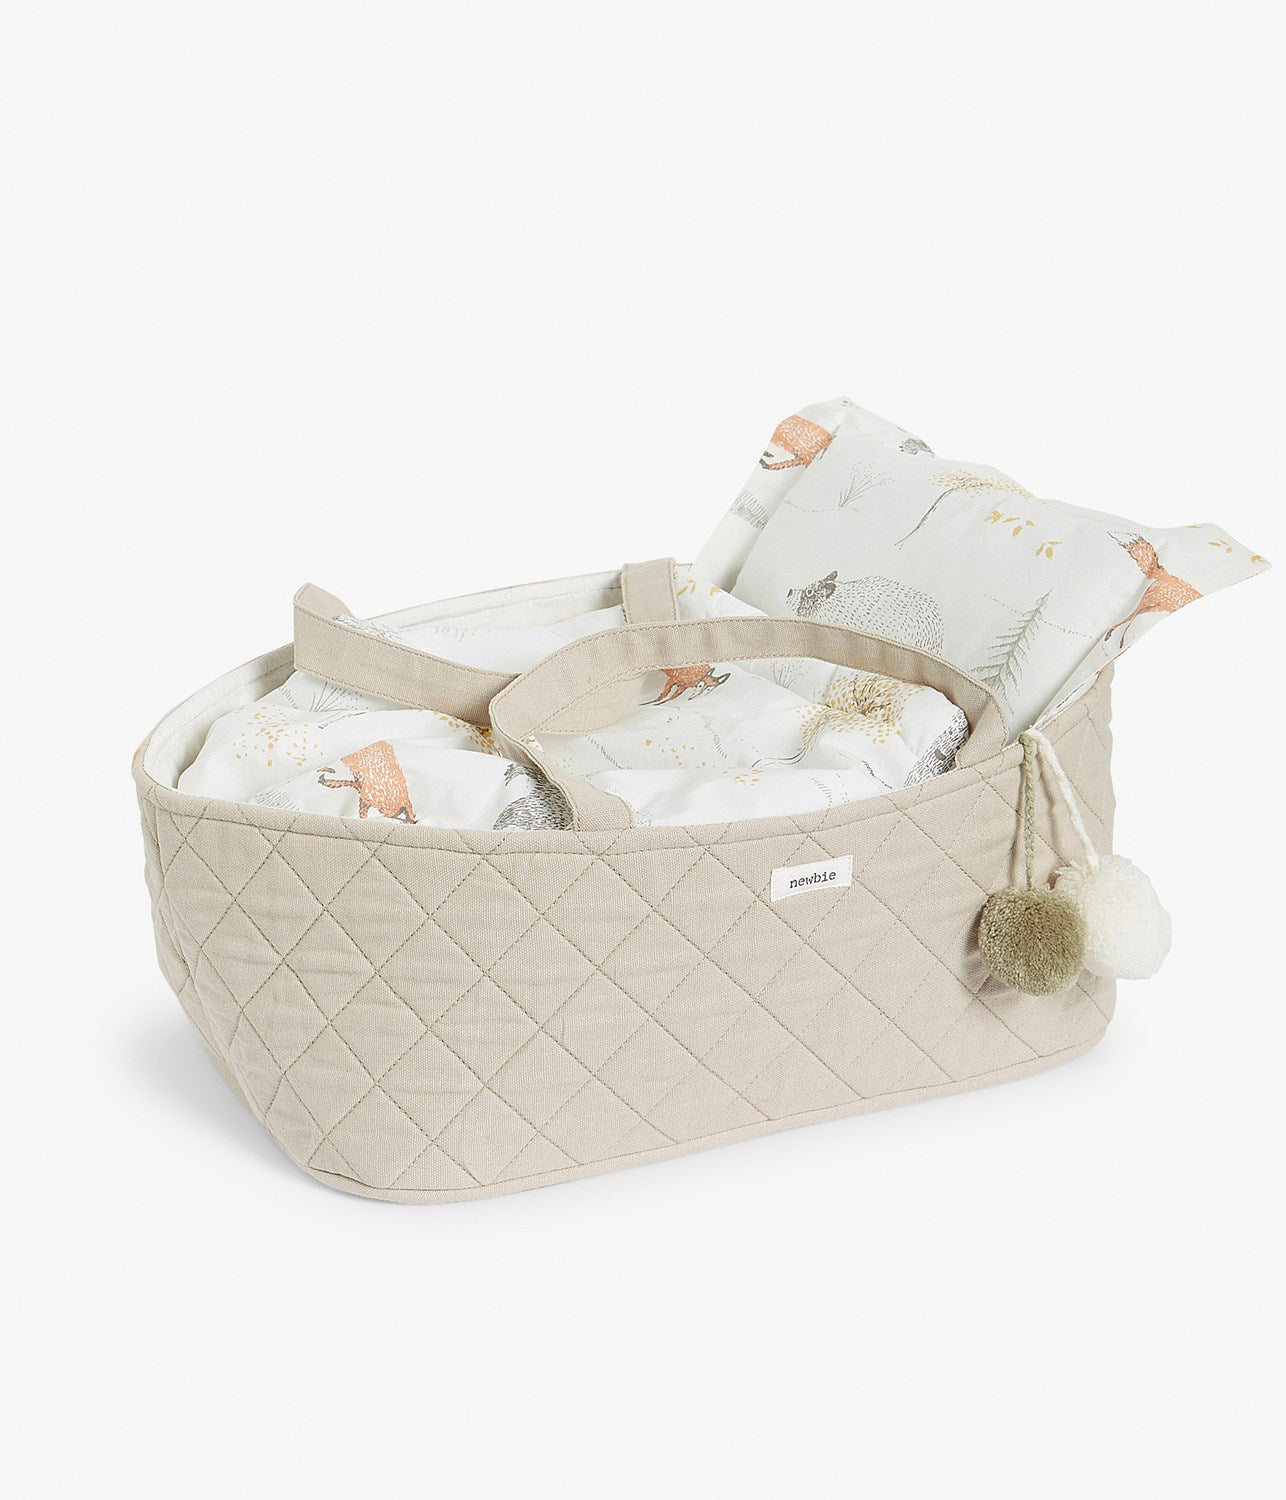 Moses basket for toys